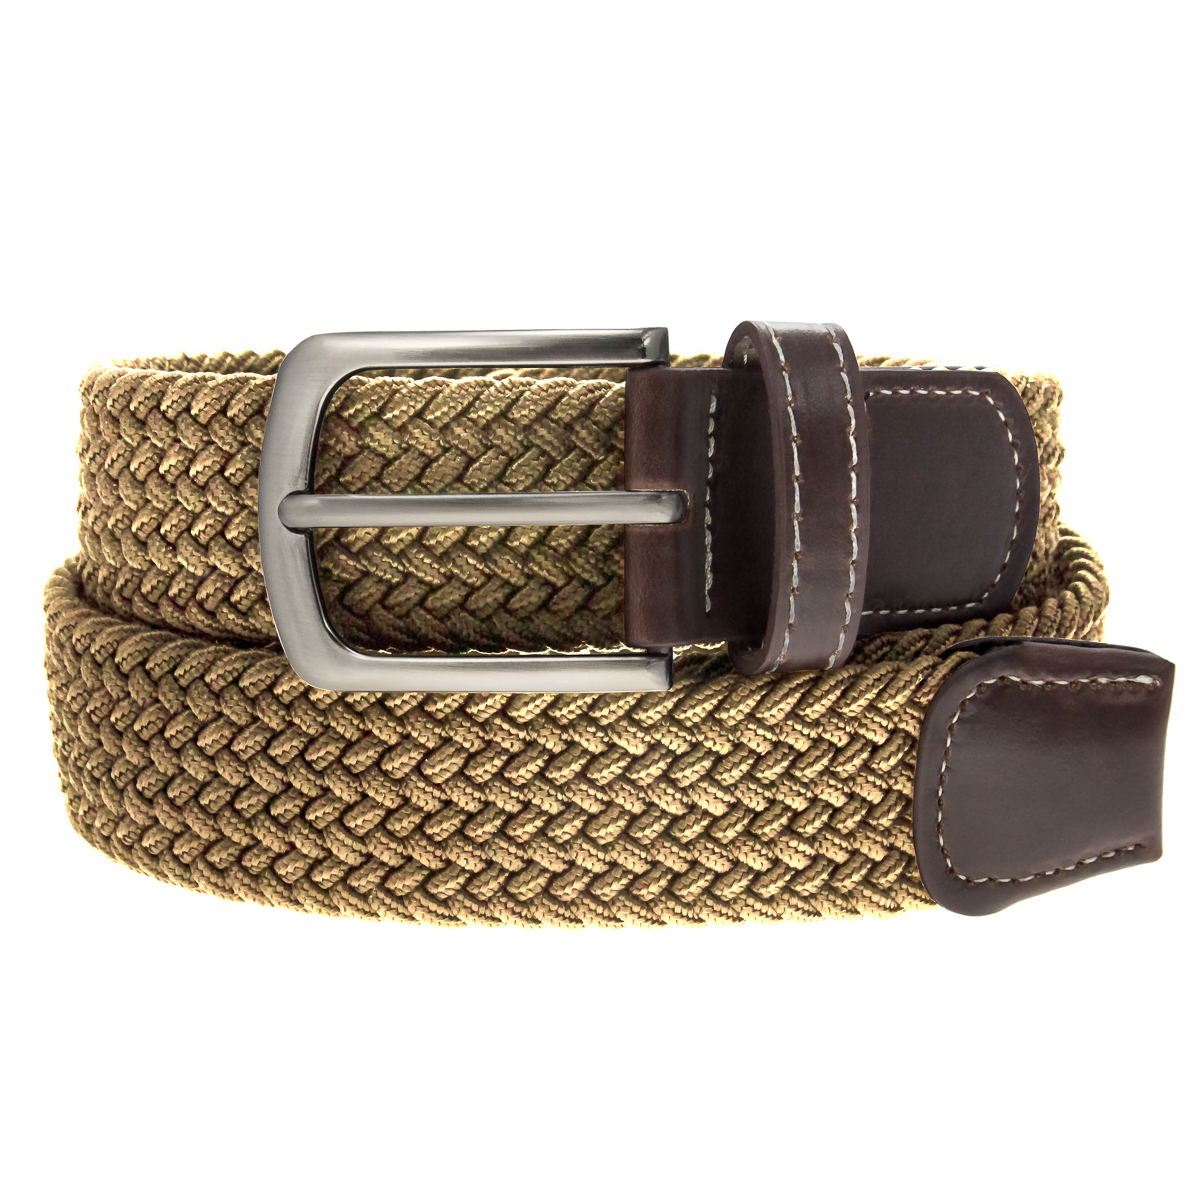 Braided Belt Nickel Finish Buckle Faux Leather Elastic ...